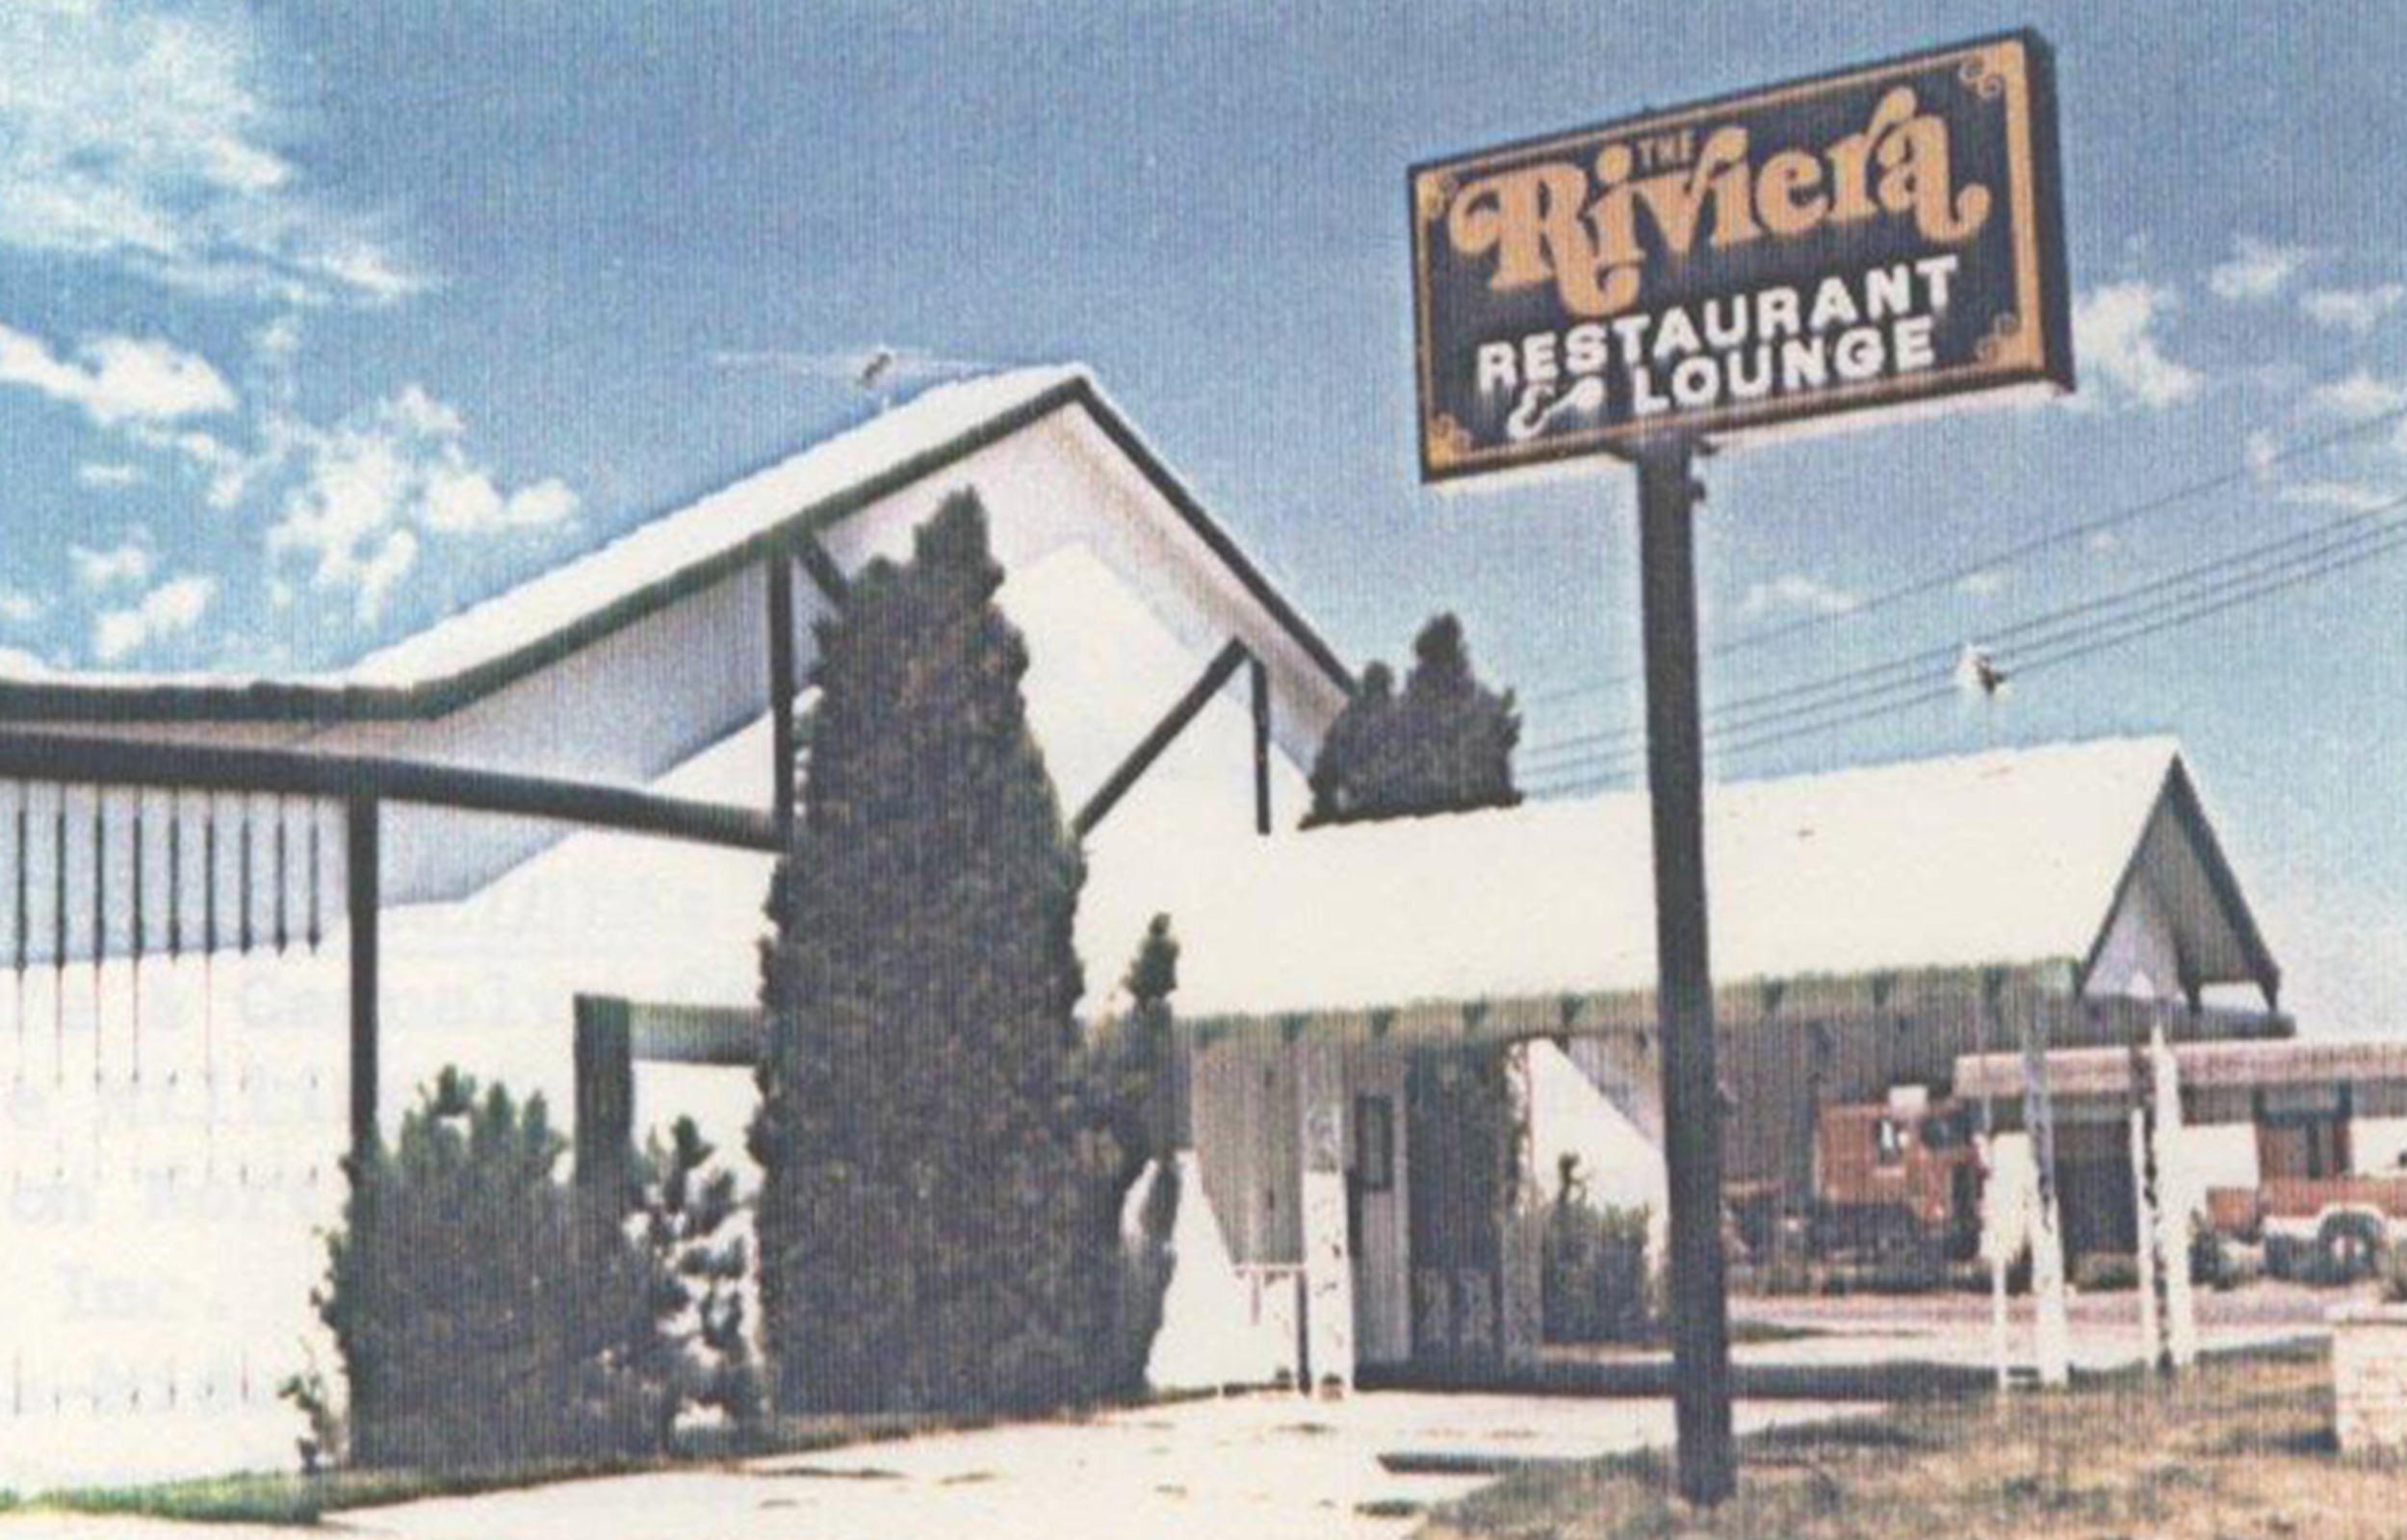 Originally the Chanhassen American Legion, it was purchased in 1959 and operated as the Riviera Supper Club. In 1999, it was purchased again and converted into Axel's, which is still in operation toda